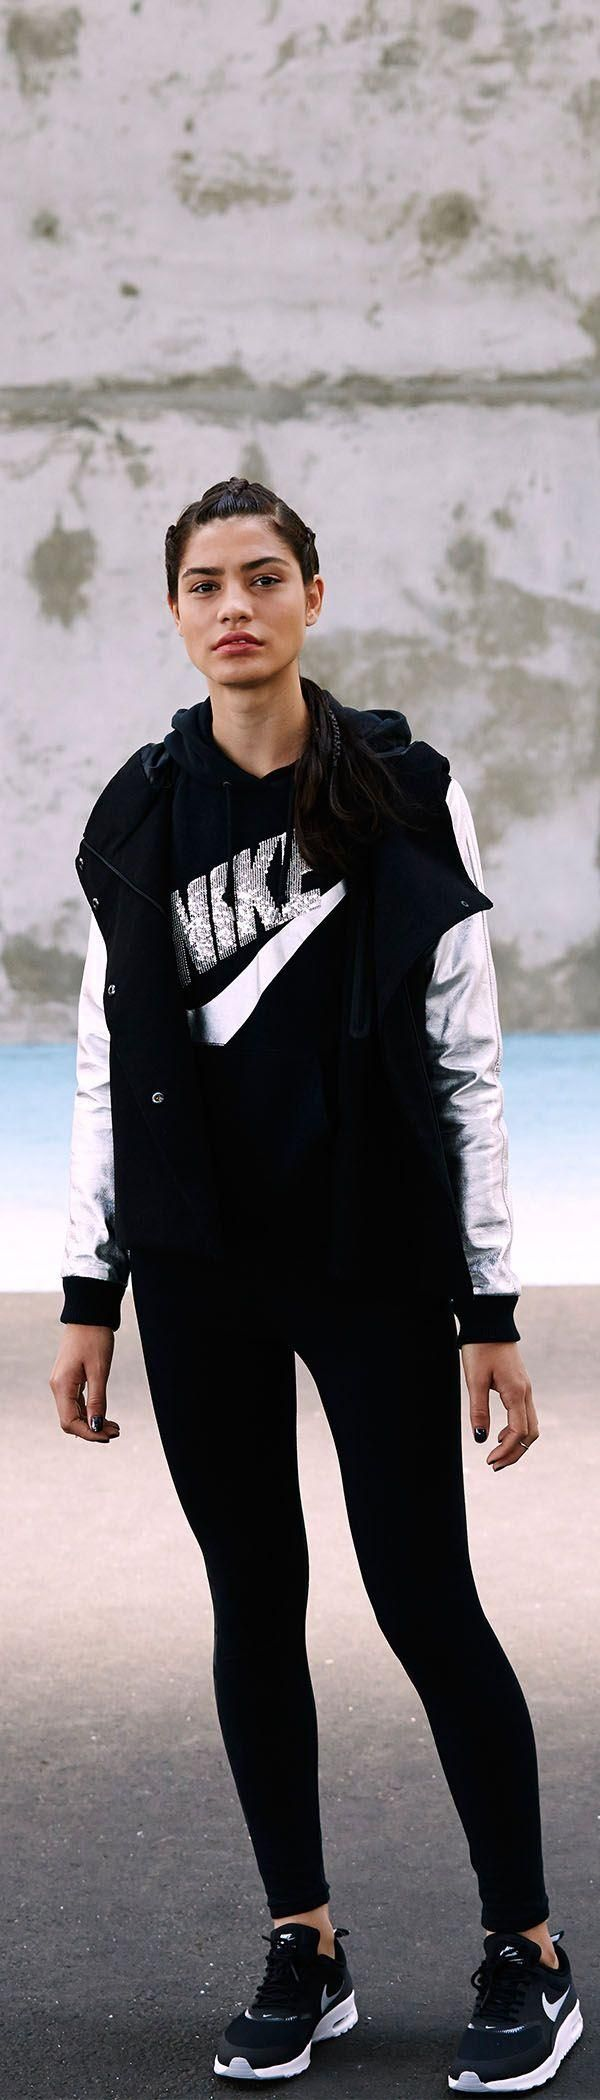 Beat winter at its own game. Rock a look with a classic style and modern fit. The Nike Destroyer Butterfly Jacket, Rally Sequin Pullover, Leg-A-See Logo Shine Leggings and Air Max Thea shoe.  | Check out their website for more Fitness Gear for Ladies. Super nice stuff that they carry